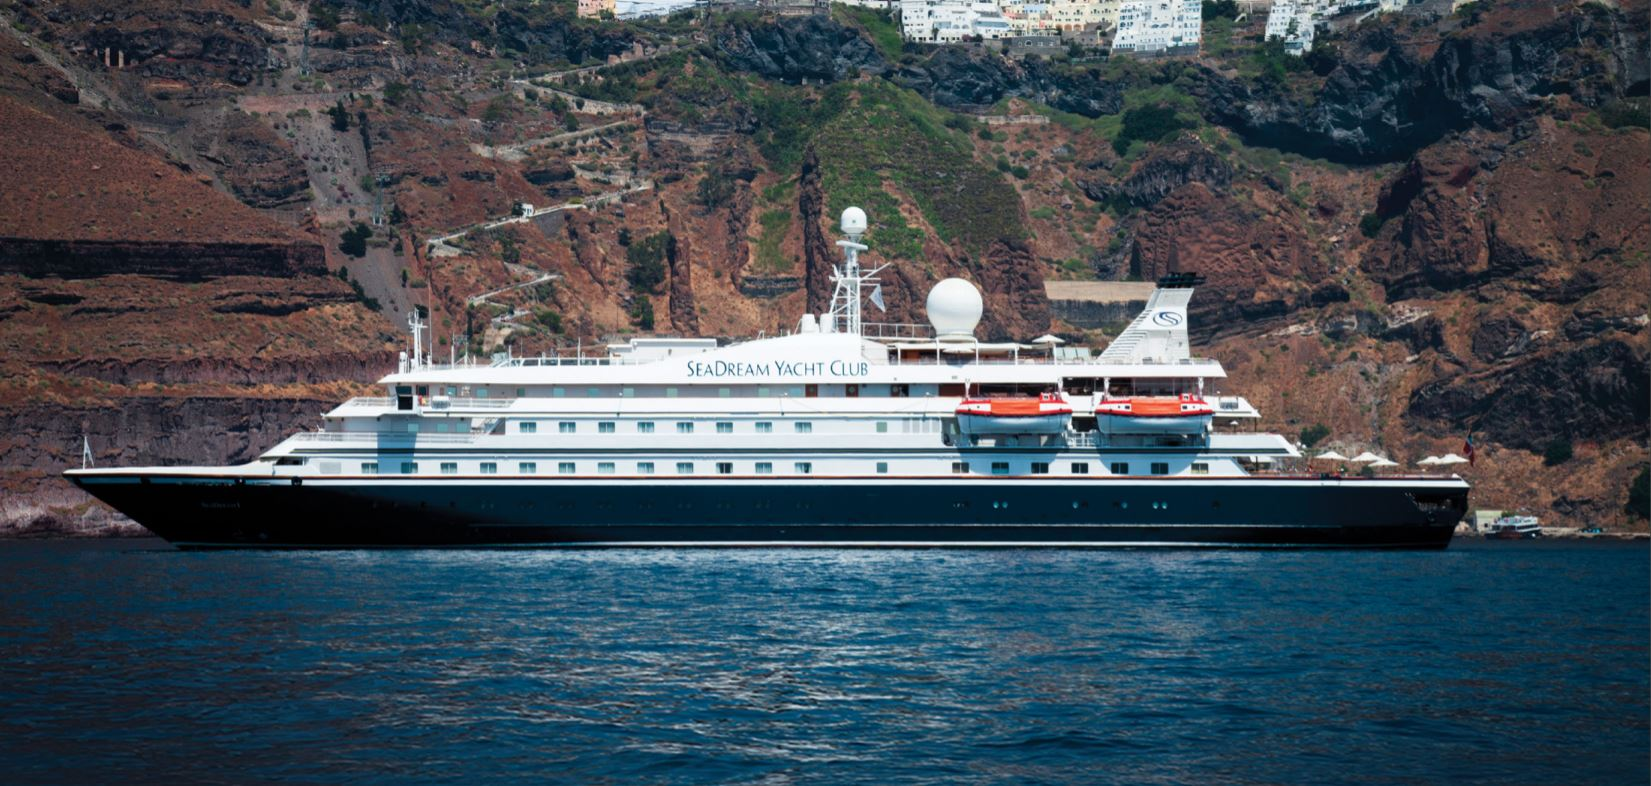 Sea Dream I & II, the ship servicing Luxury Mediterranean: From Athens to Venice